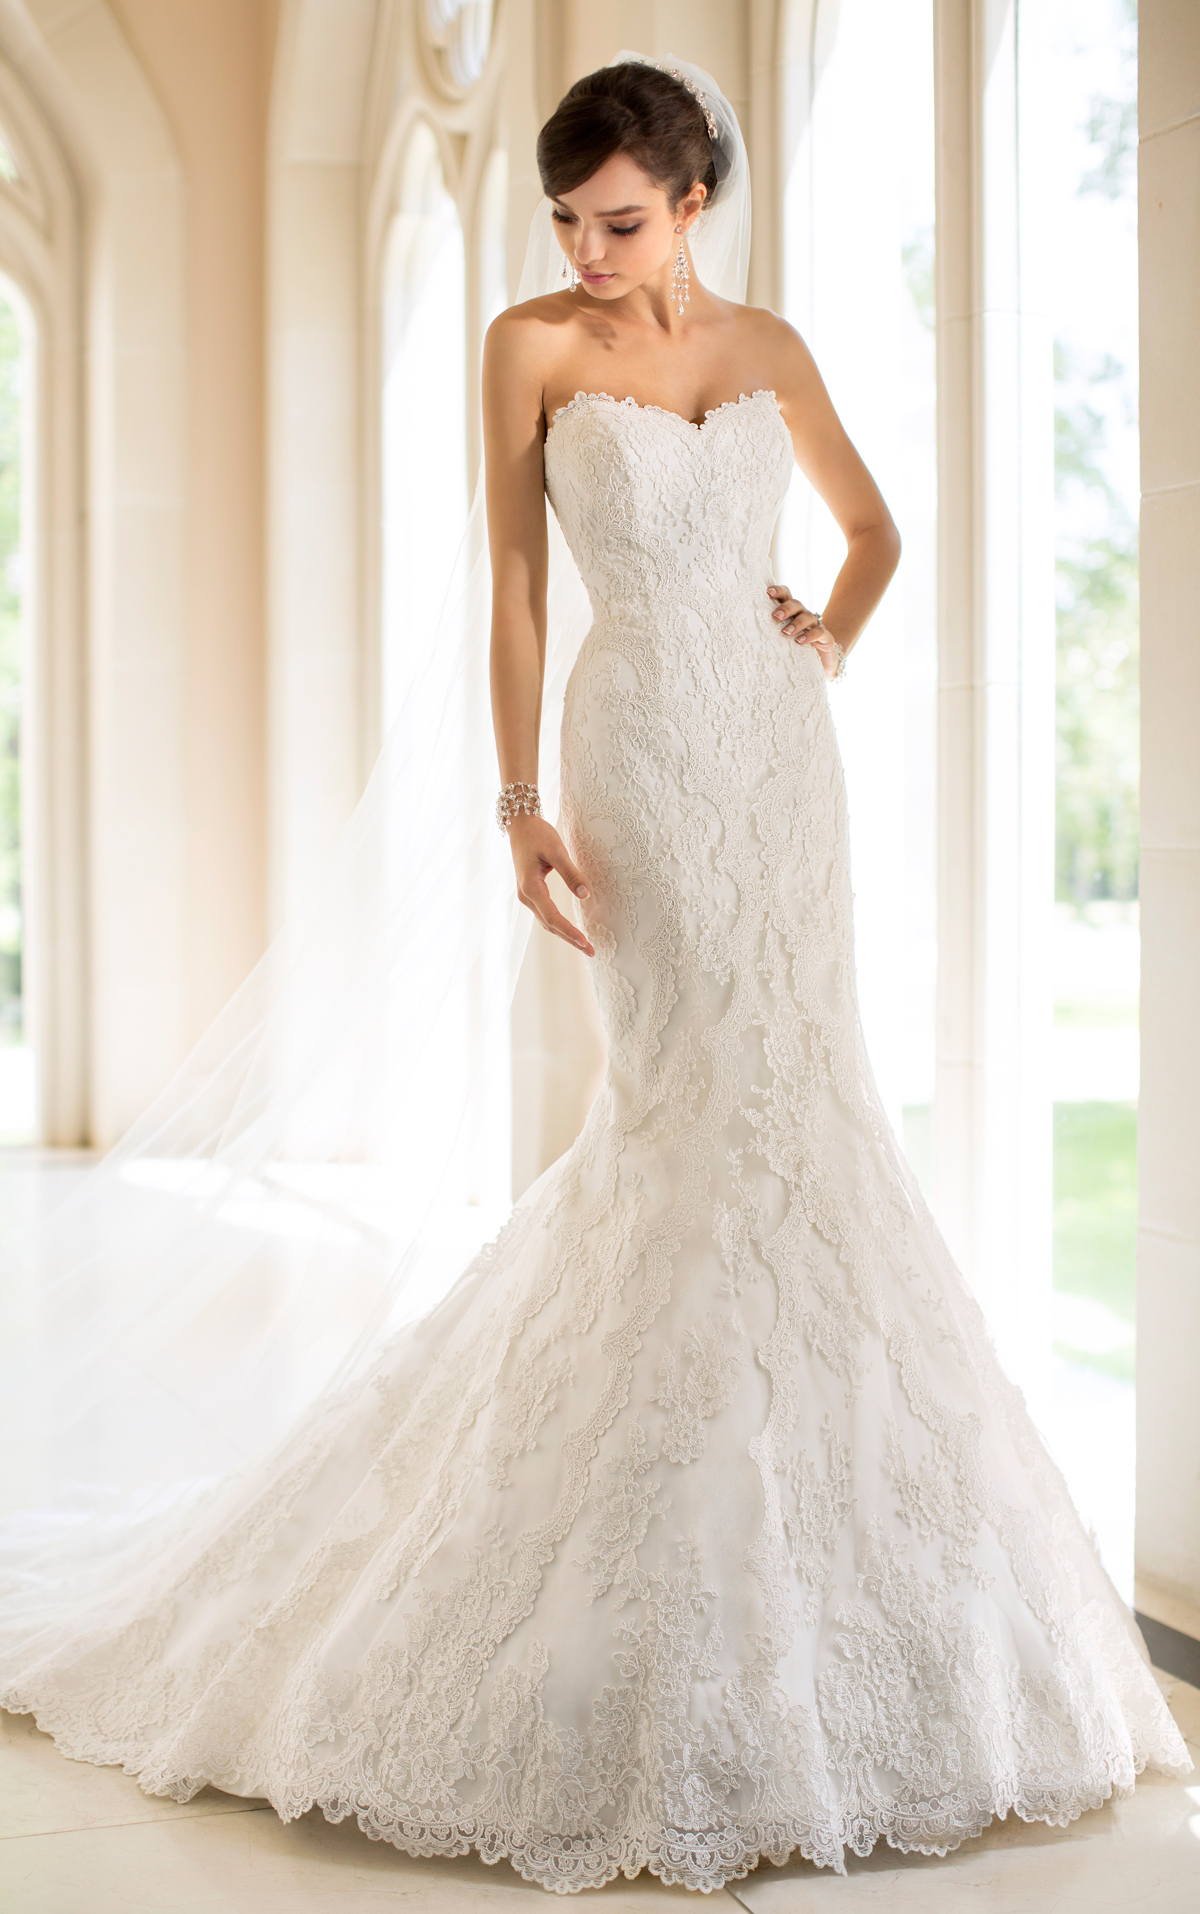 stella-york-wedding-dresses-2014-8-01152014